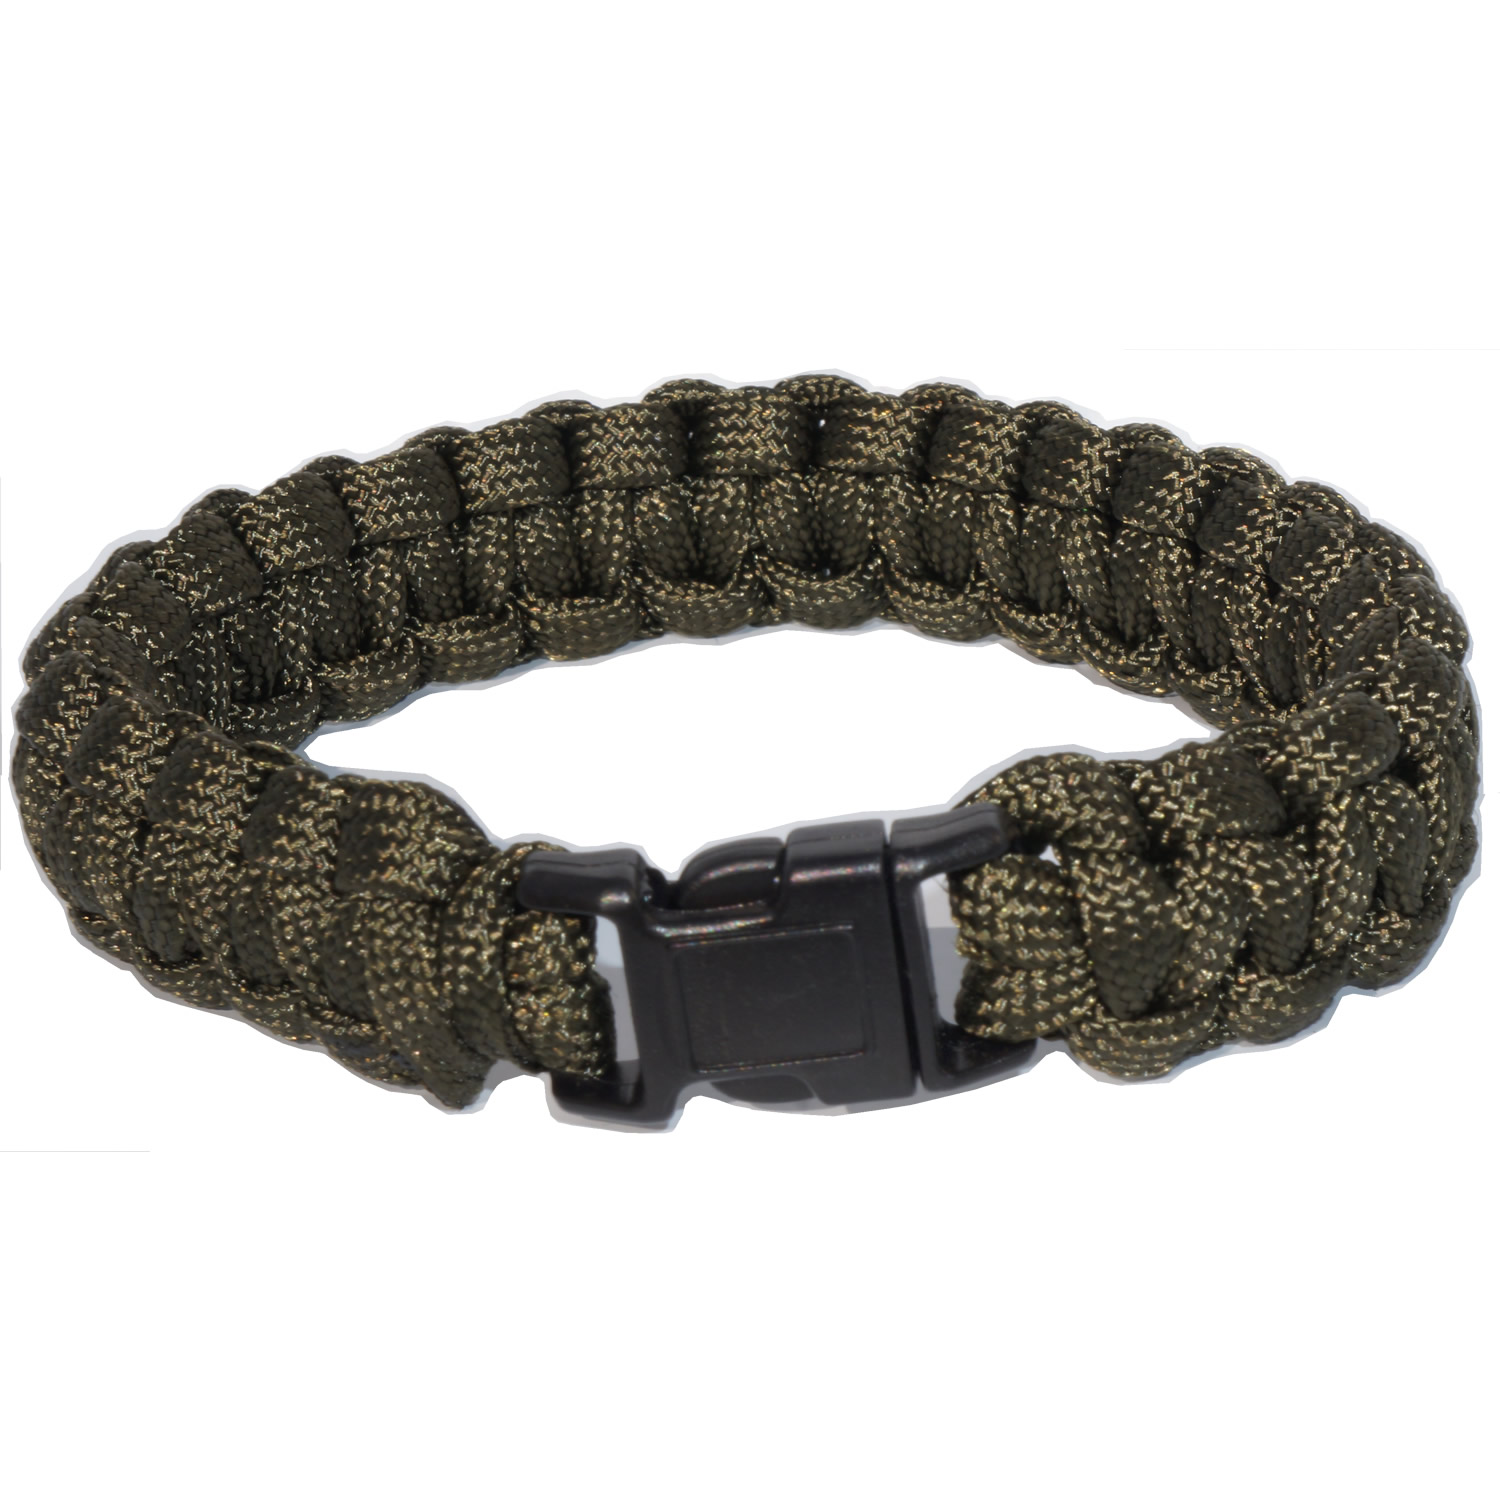 Every Day Carry 6 Ft Tactical Survival Paracord Bracelet